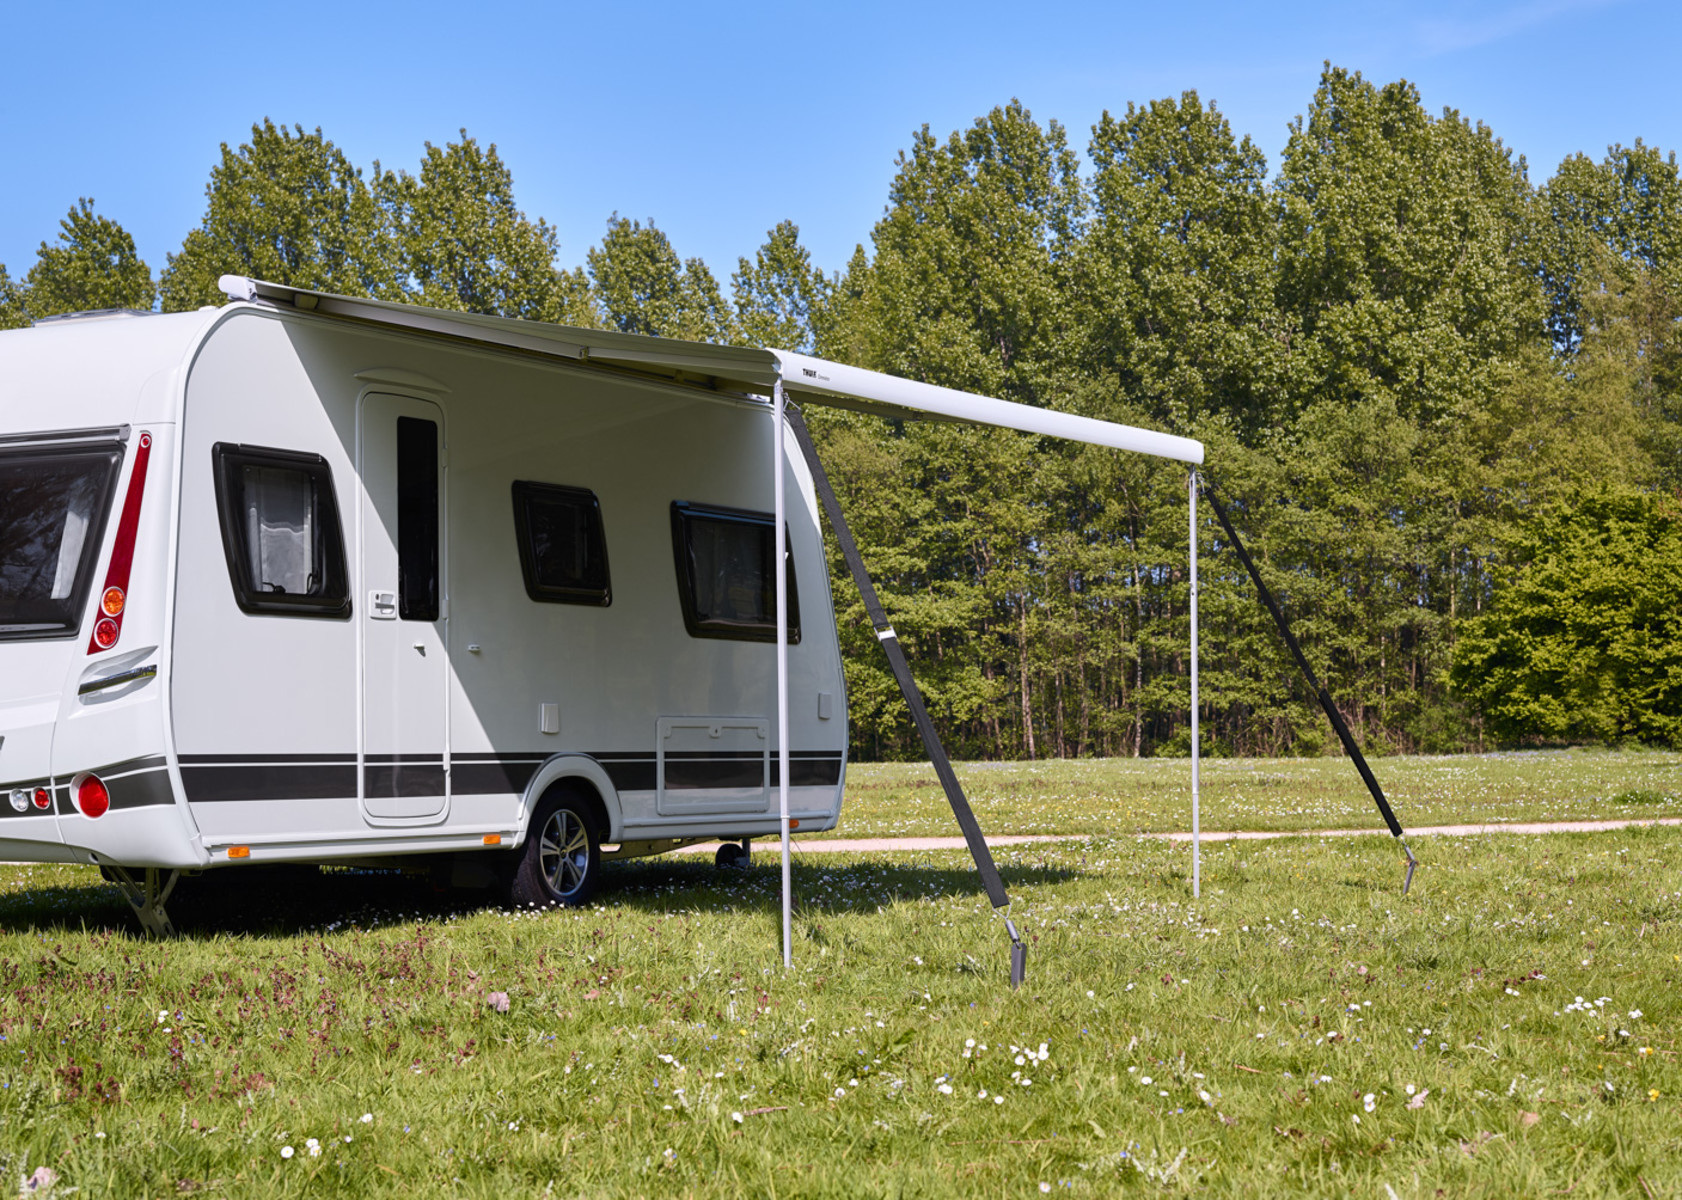 Rv Awning Tie Down Strap Kit Tie Wallpaper Hd